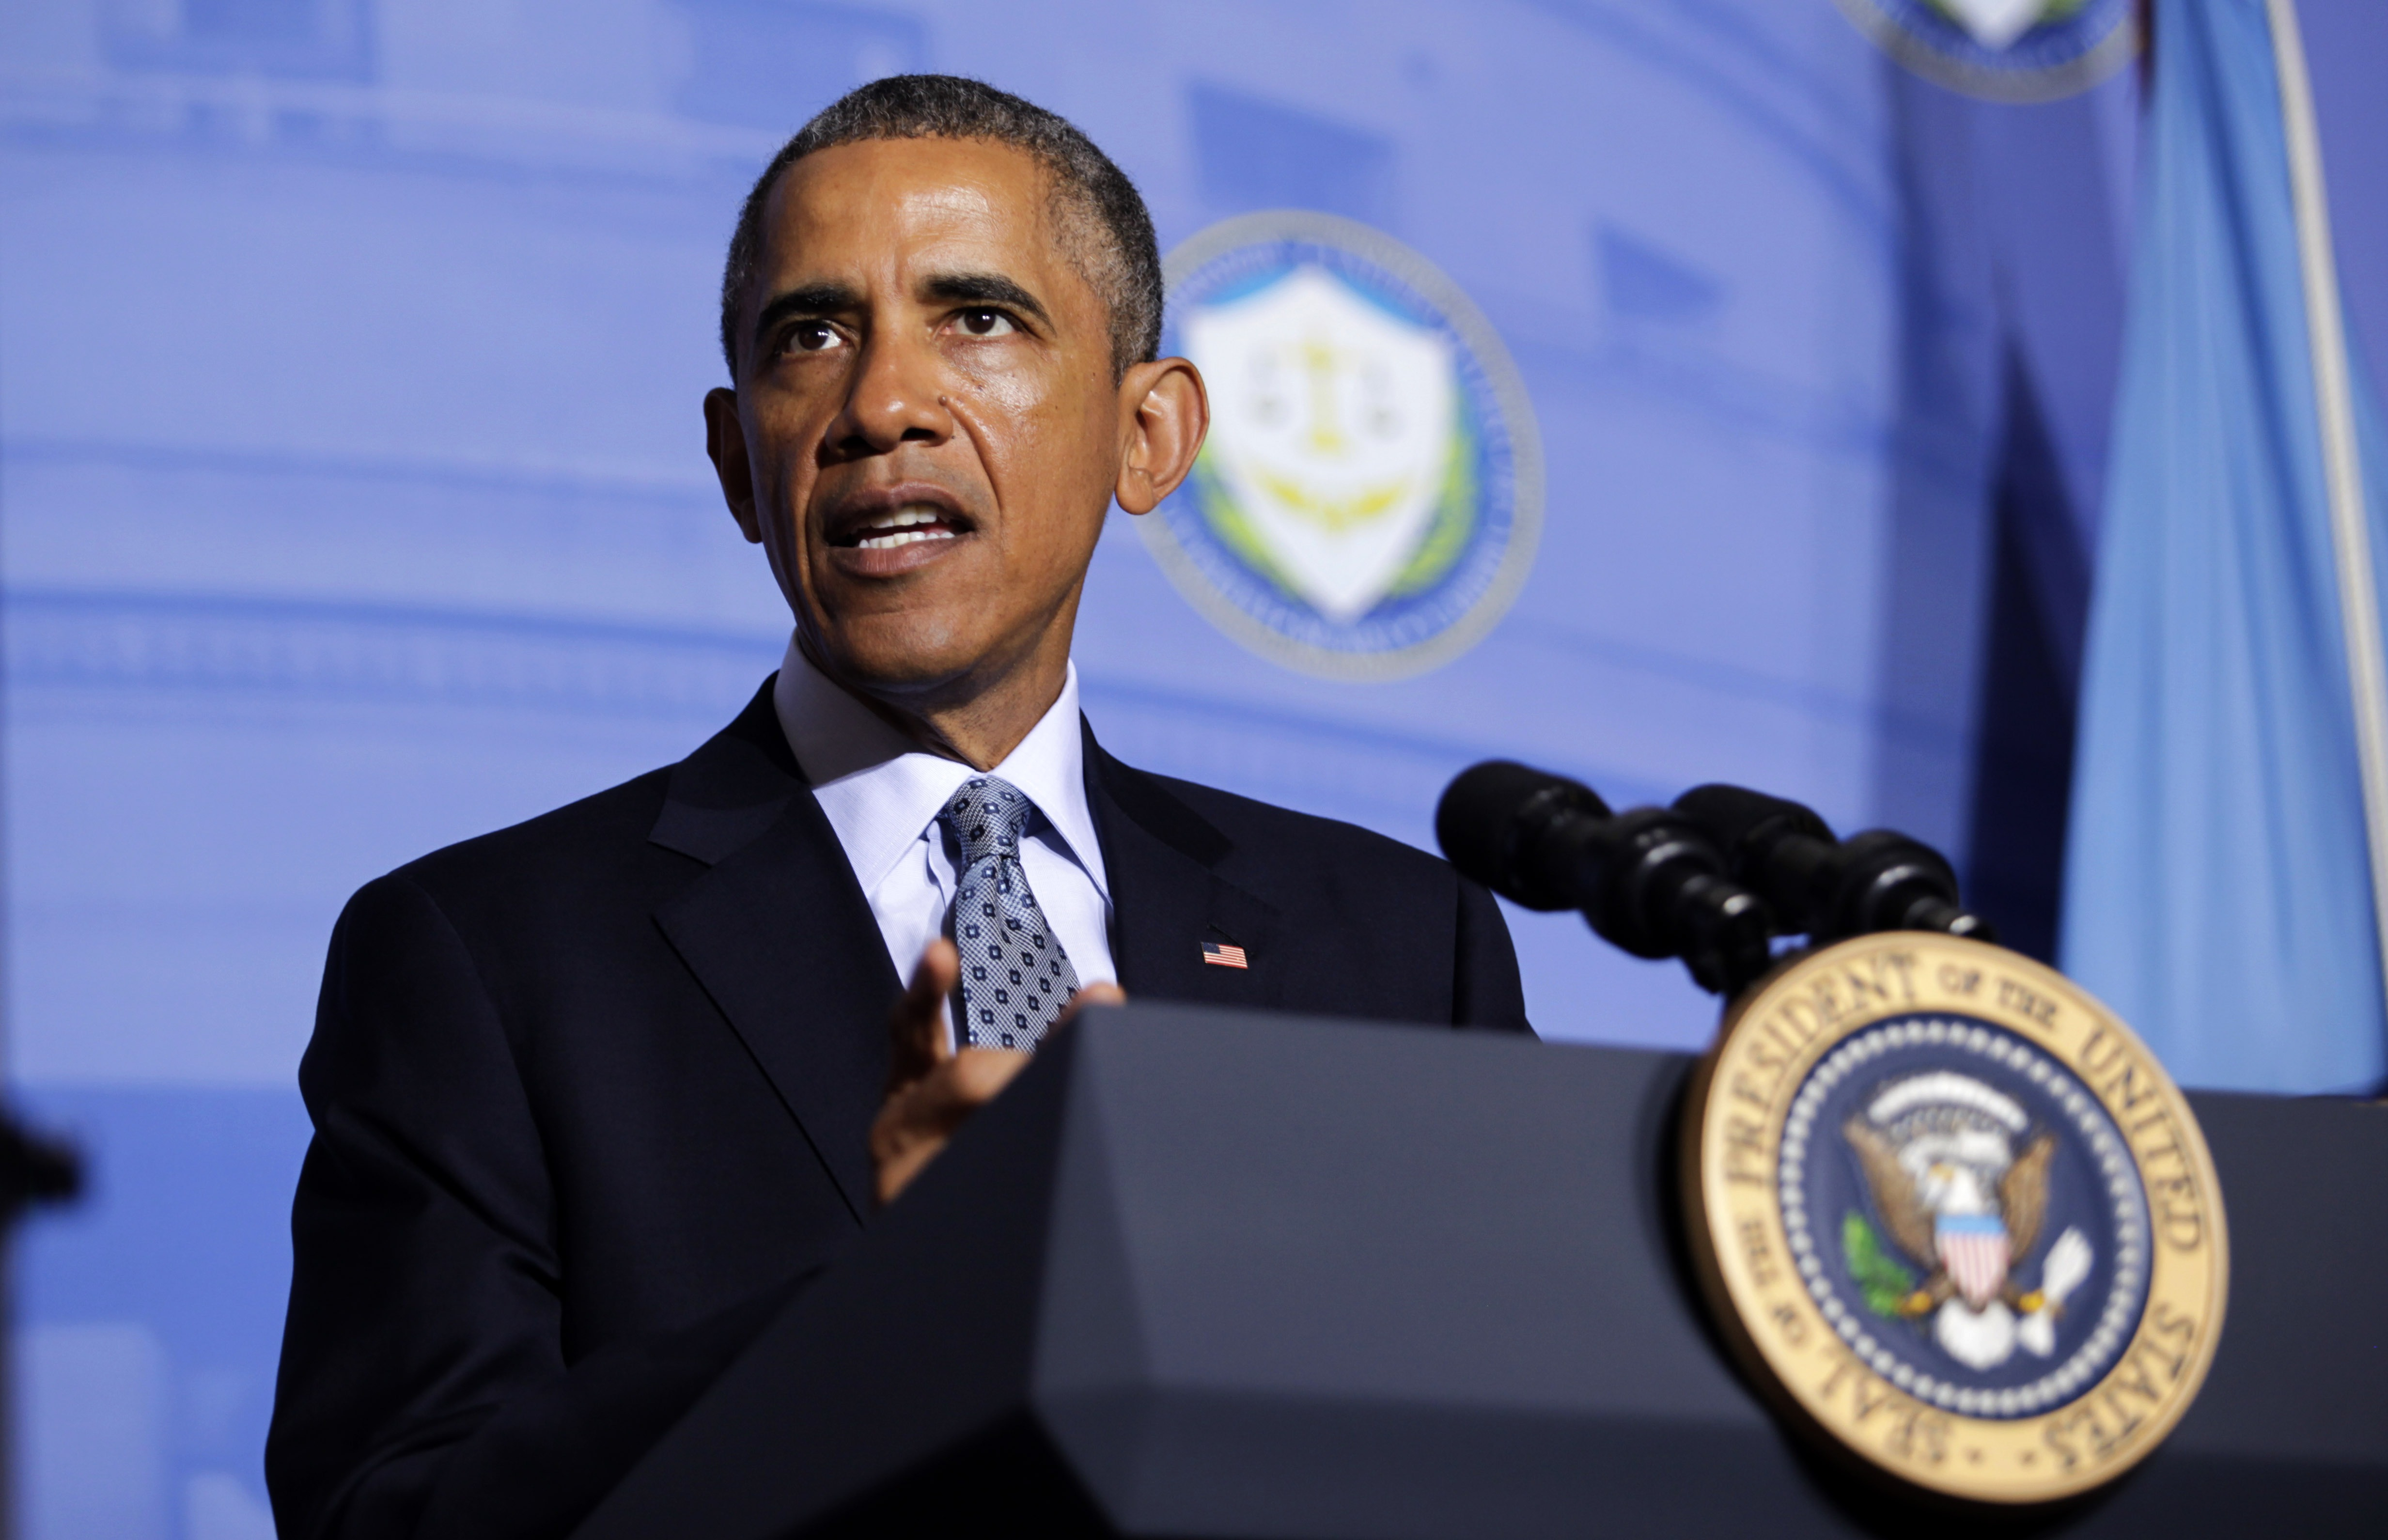 President Obama to unveil major legislation to ramp up US cybersecurity